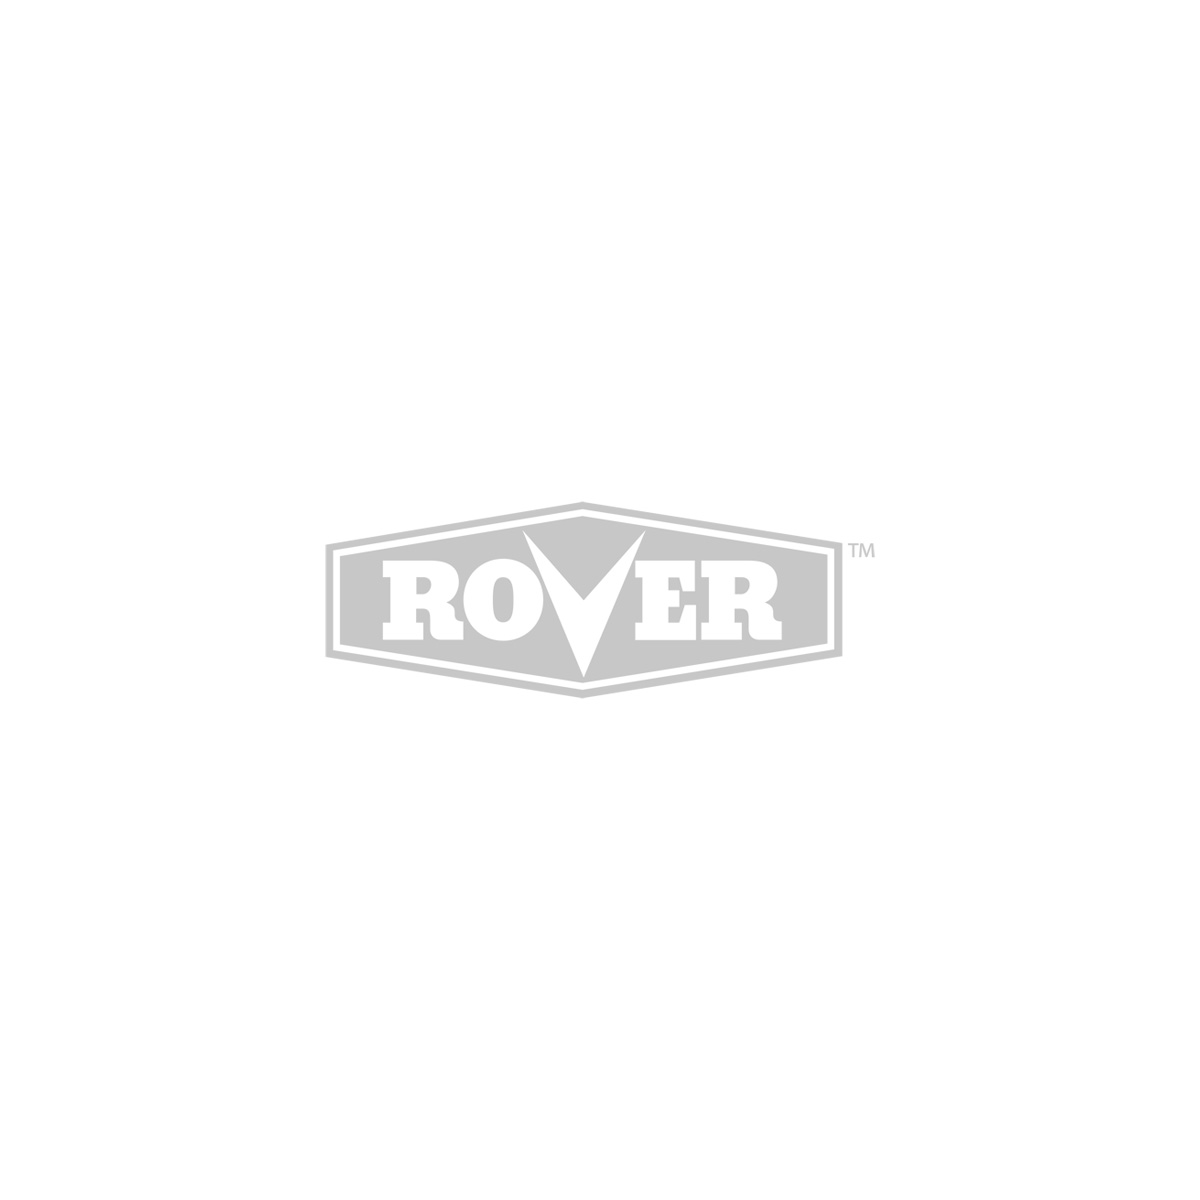 4 wheel steering and steering wheel control provide superior saftey and control, especially on steep terrain